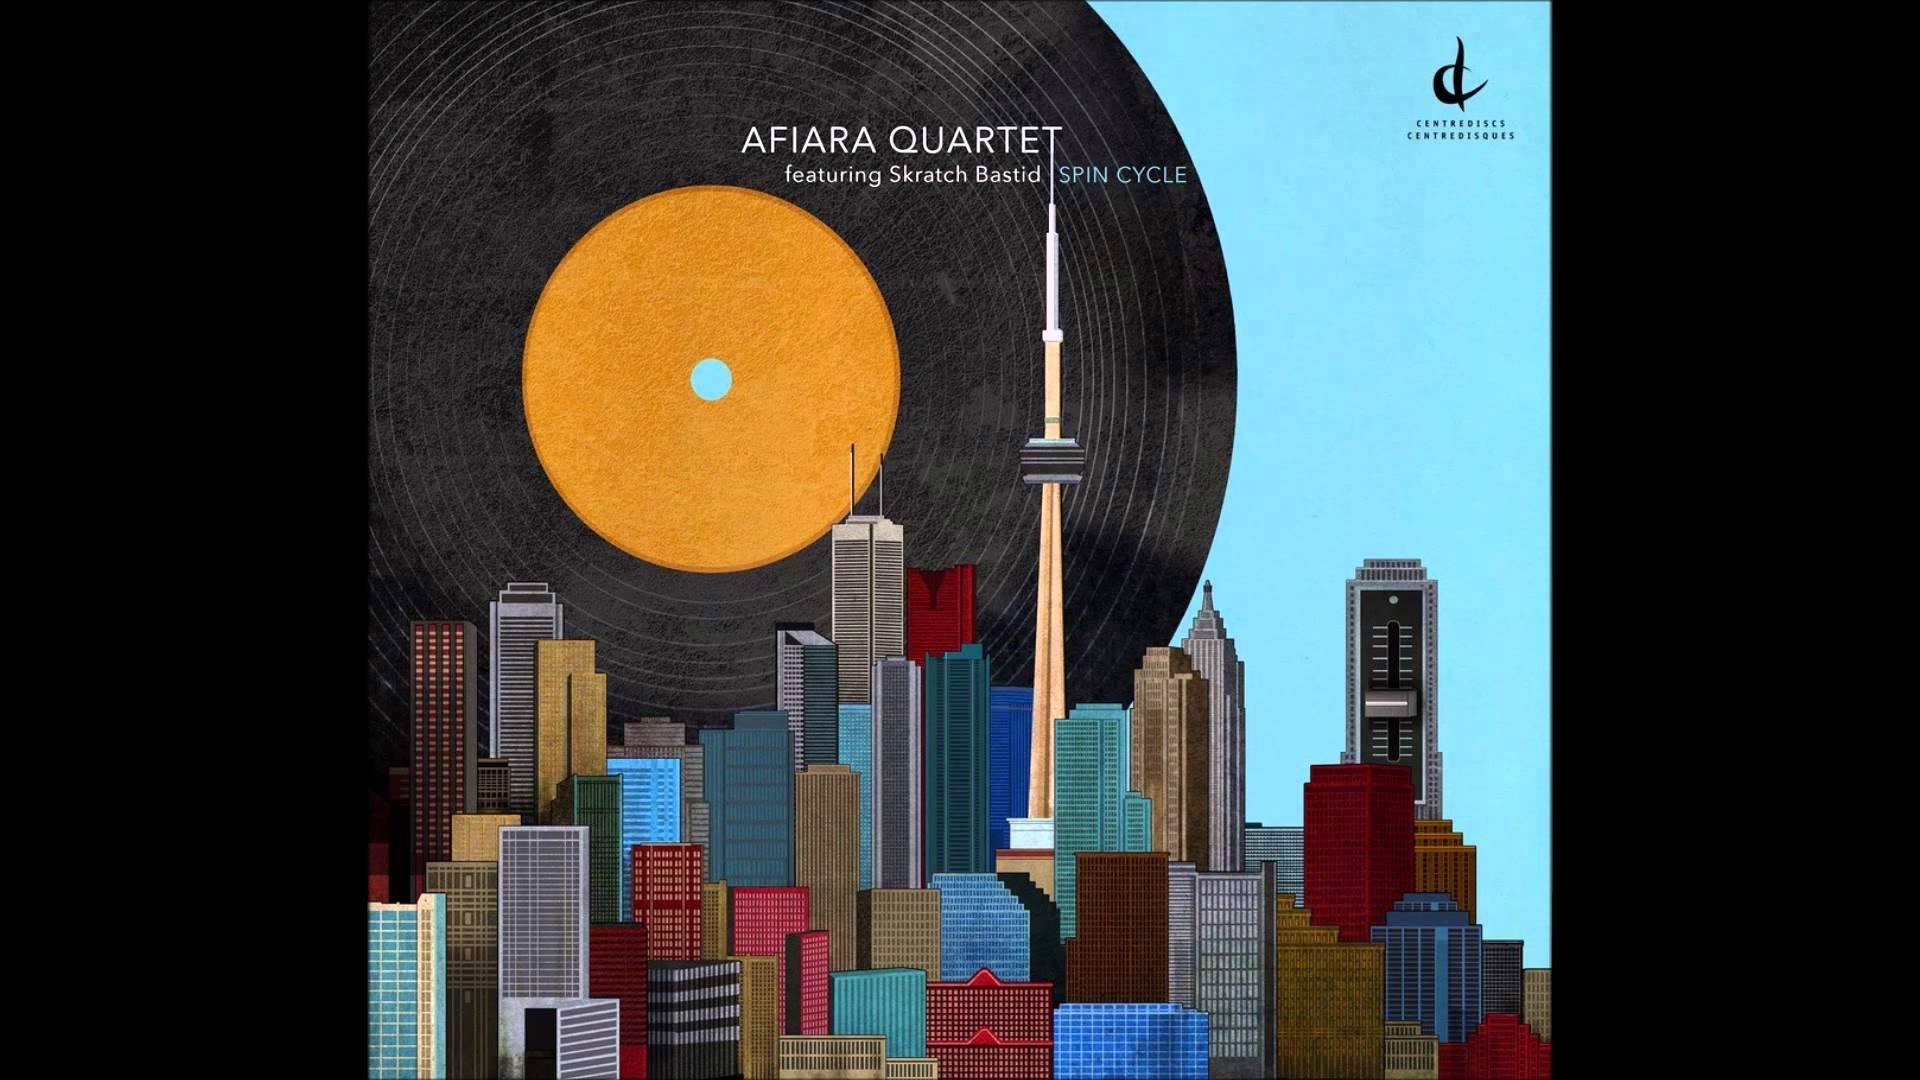 Dirty Laundry, Heavy Load - Afiara Quartet & Skratch Bastid